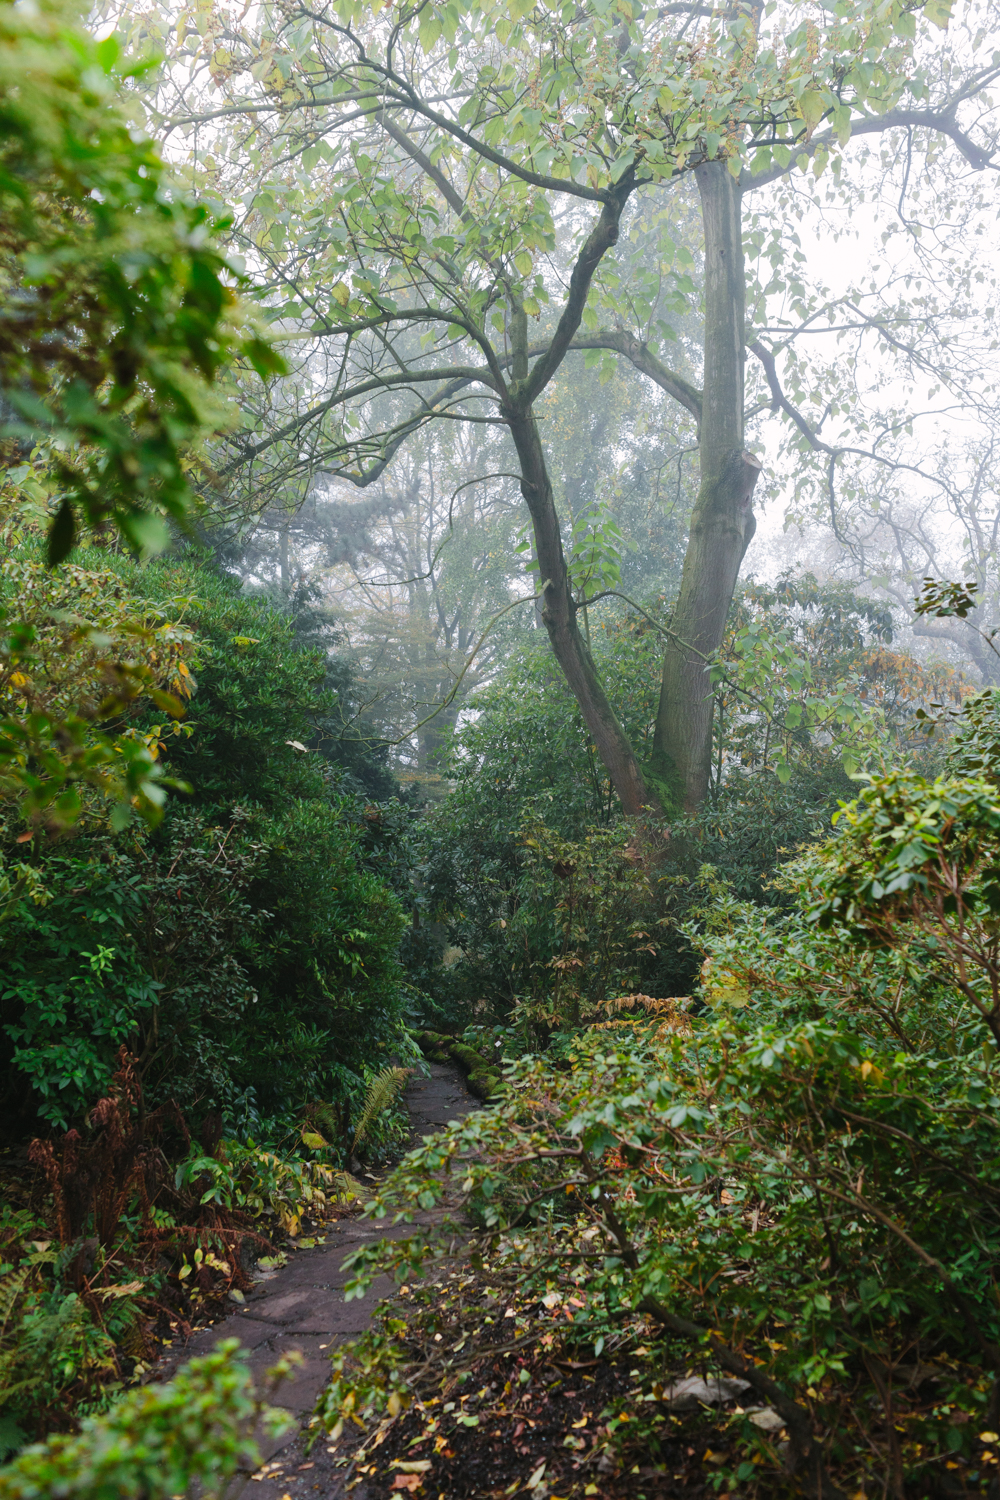 Hortus-Botanicus-Amsterdam-Instagram-takeover-by-on-a-hazy-morning-16.jpg